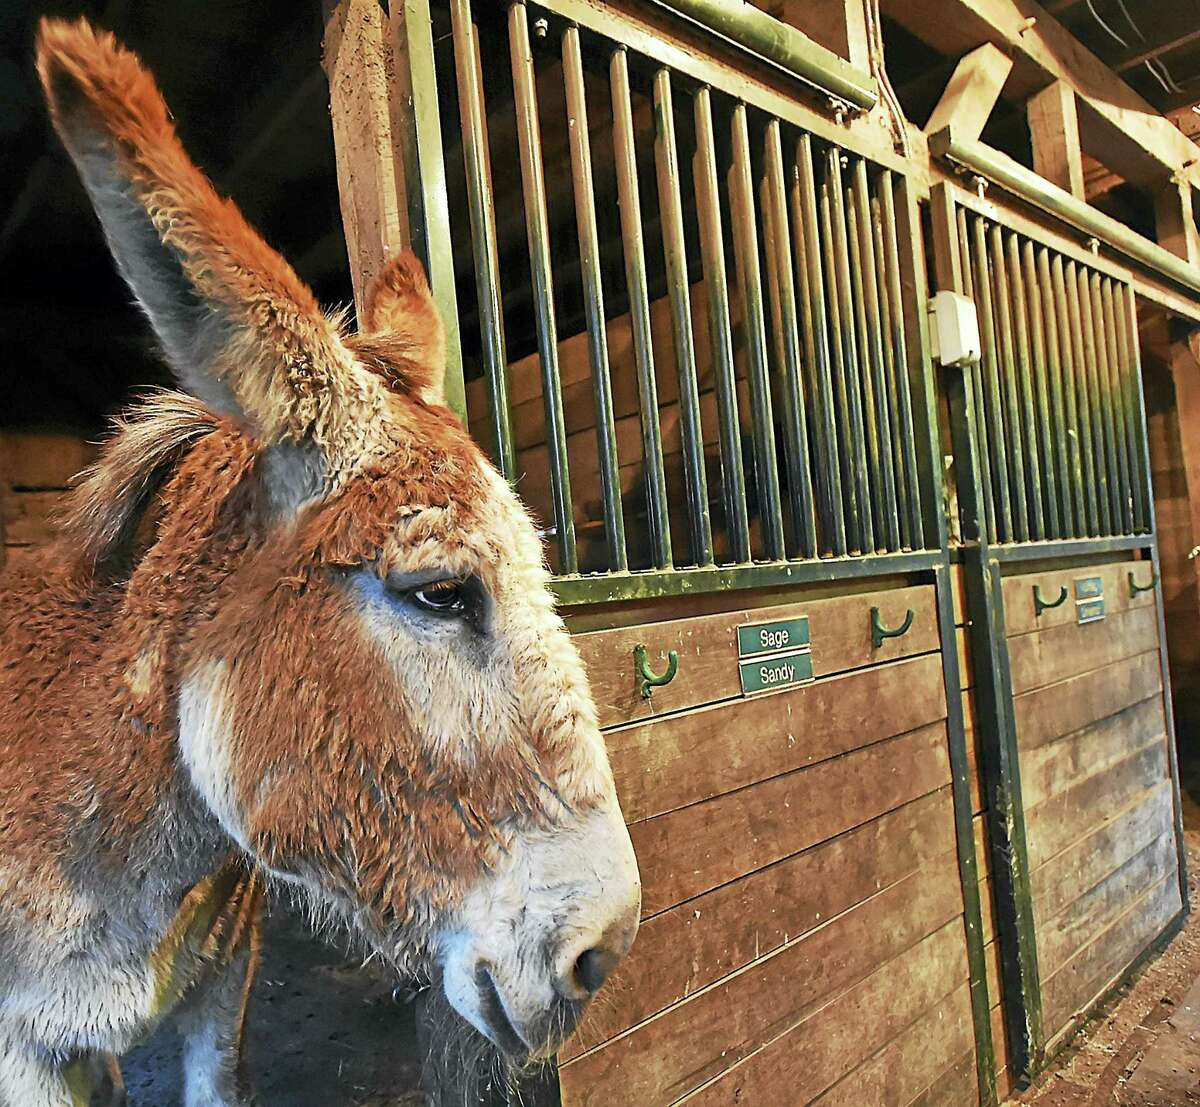 Kim Dockett and Mike Capelli, owners of Tripledale Farm in Guilford, Wednesday, April 26, 2017, have three of the 2,500 mammoth donkeys in the world, a species that is on the watch list for endagernment. (Catherine Avalone - New Haven Register)